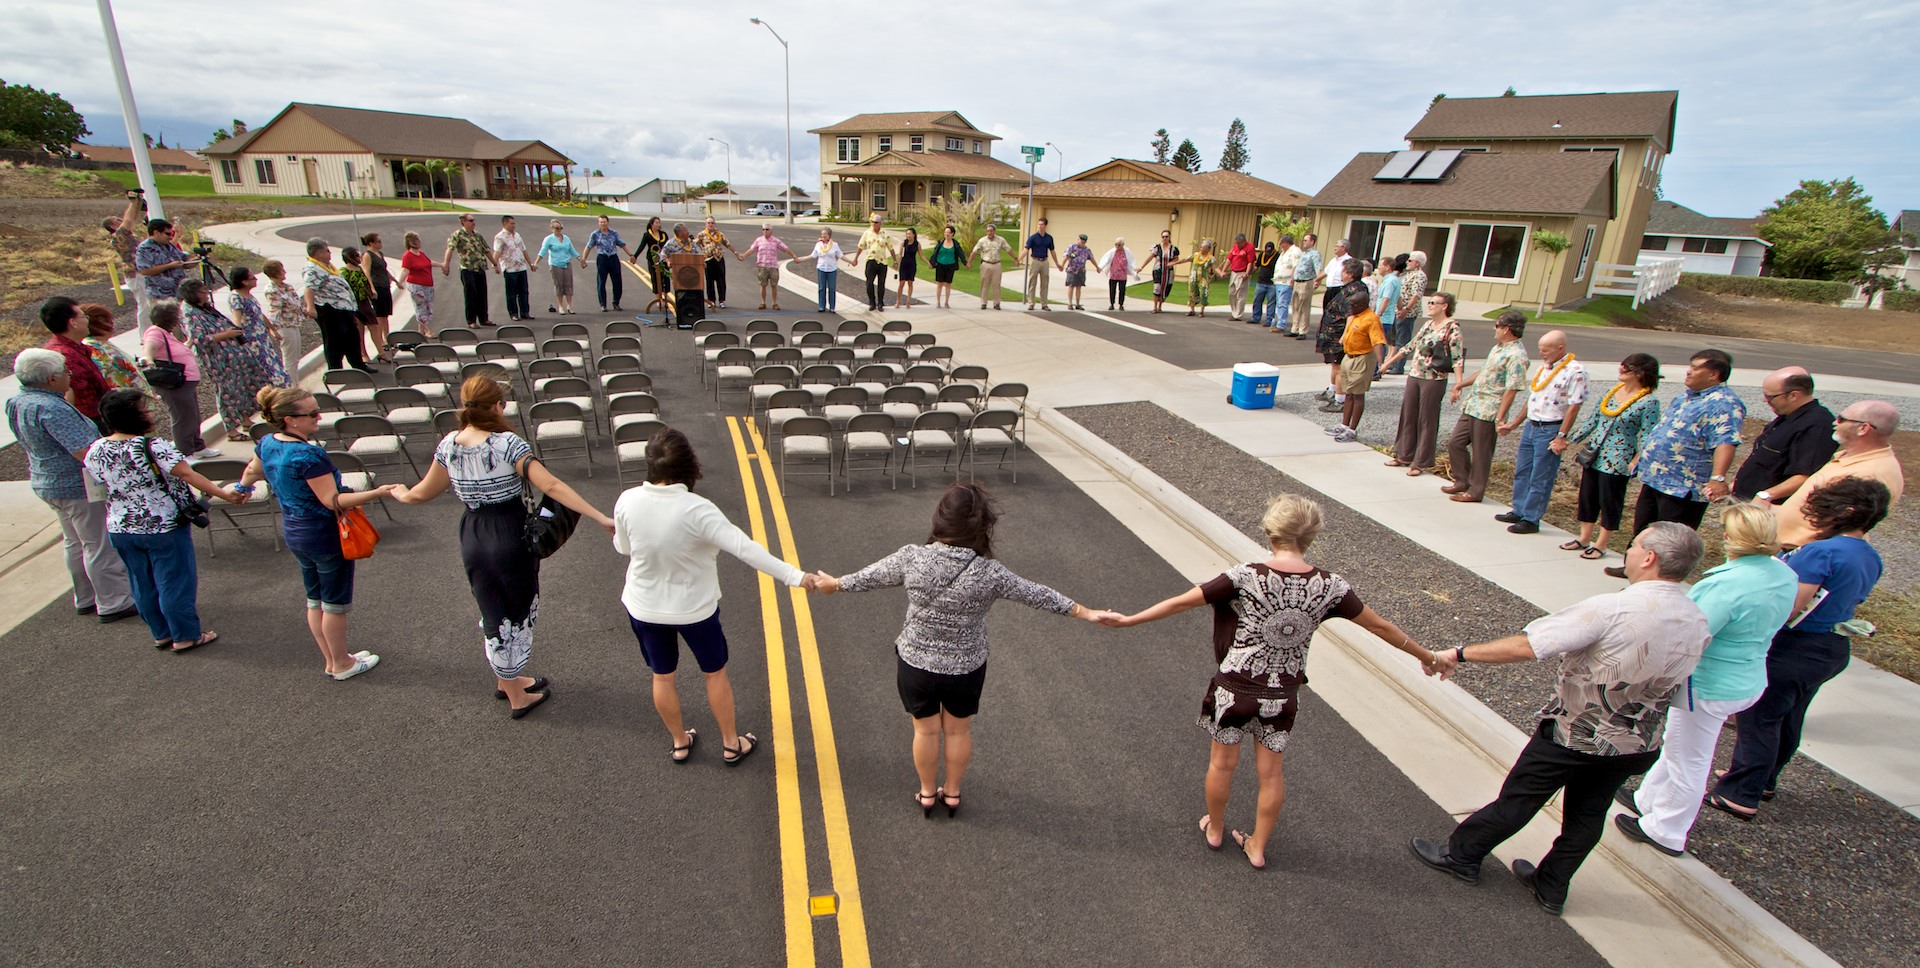 The 12-acre community park and affordable home models were blessed and open for the public to visit during ceremonies in Waikoloa.